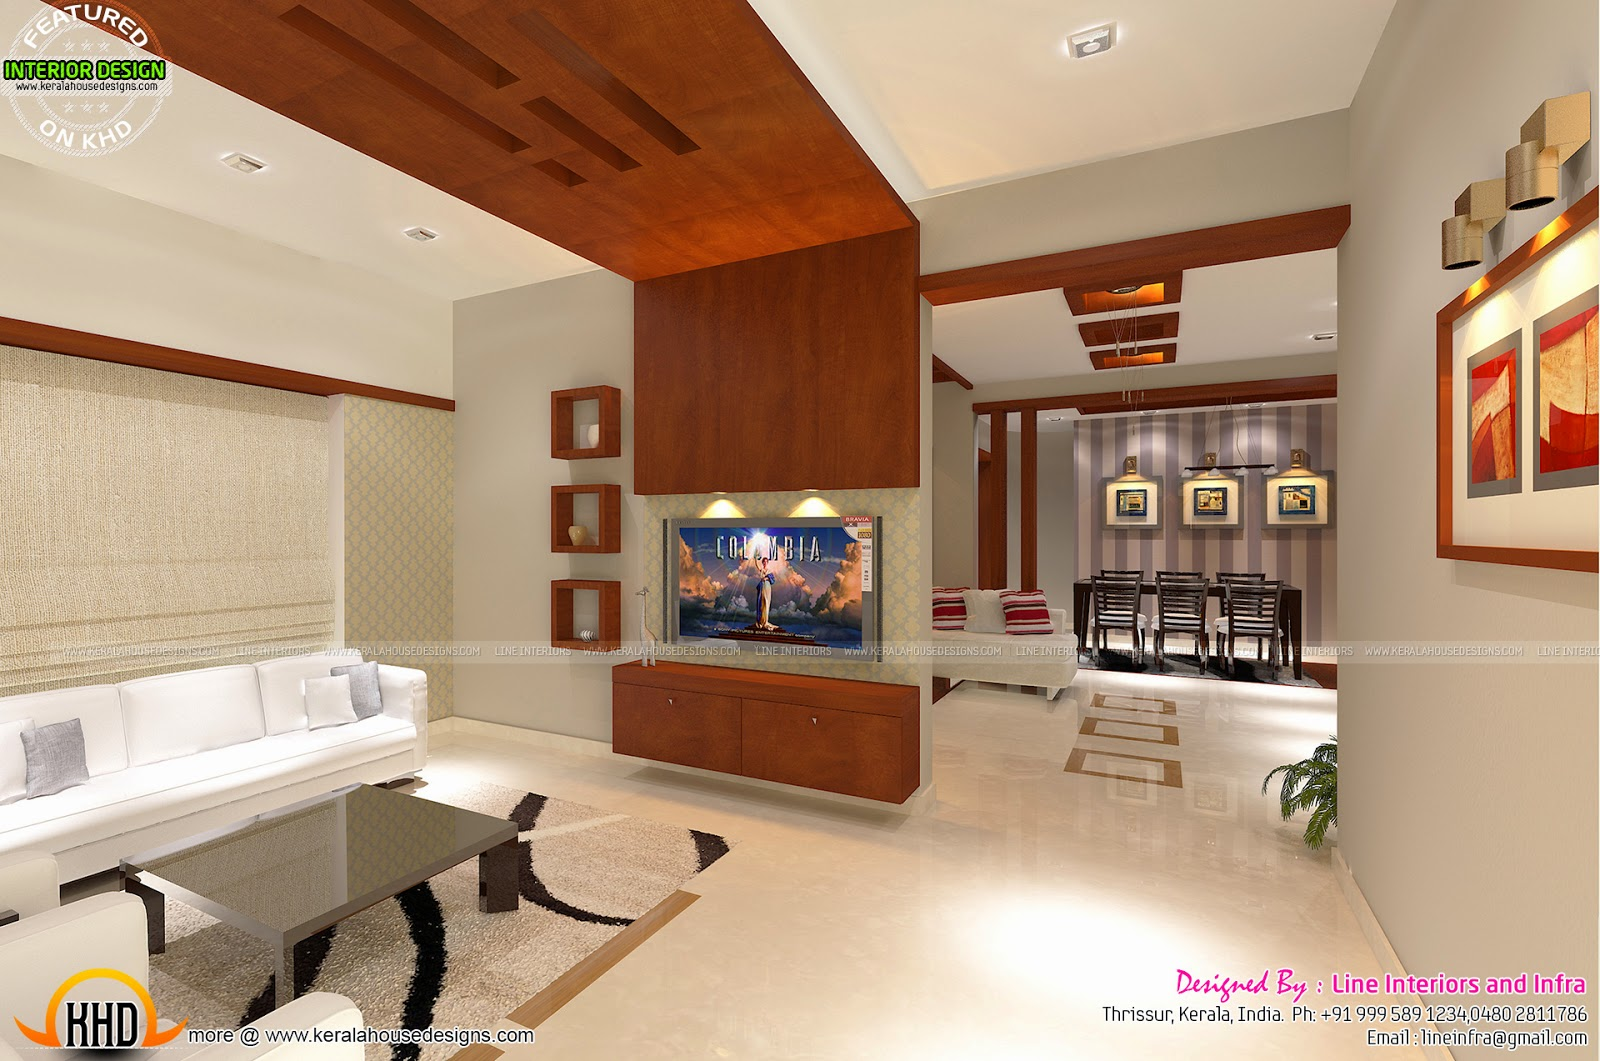 Annabella 67 Art Line Design : Interiors design by line and infra kerala home